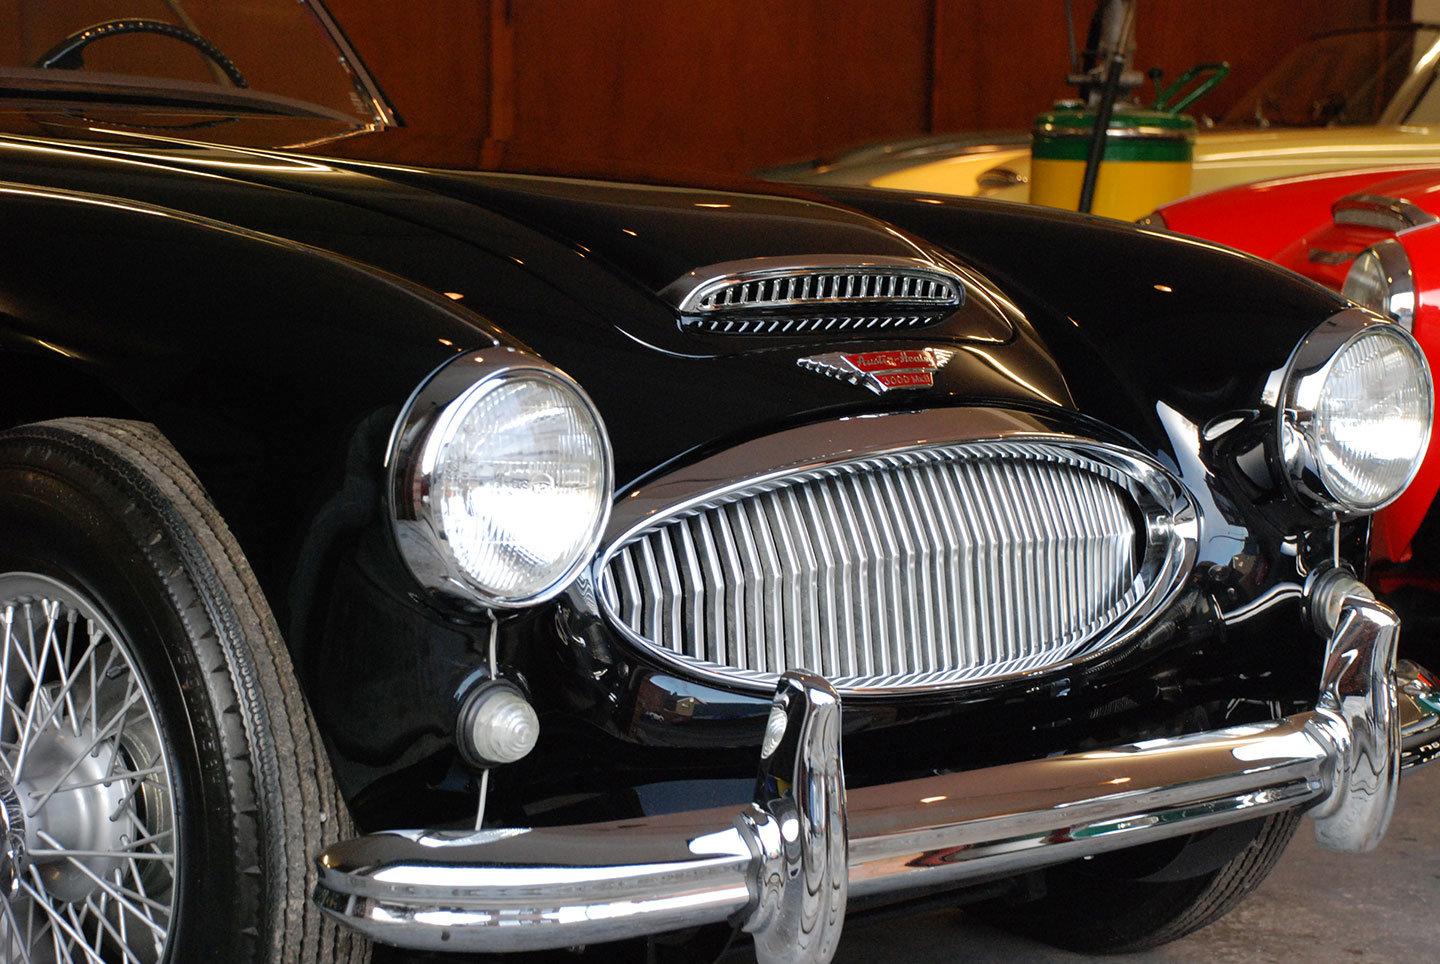 1961 Austin Healey 3000 Mk 2 BN7 2 seater tri carb For Sale (picture 2 of 10)